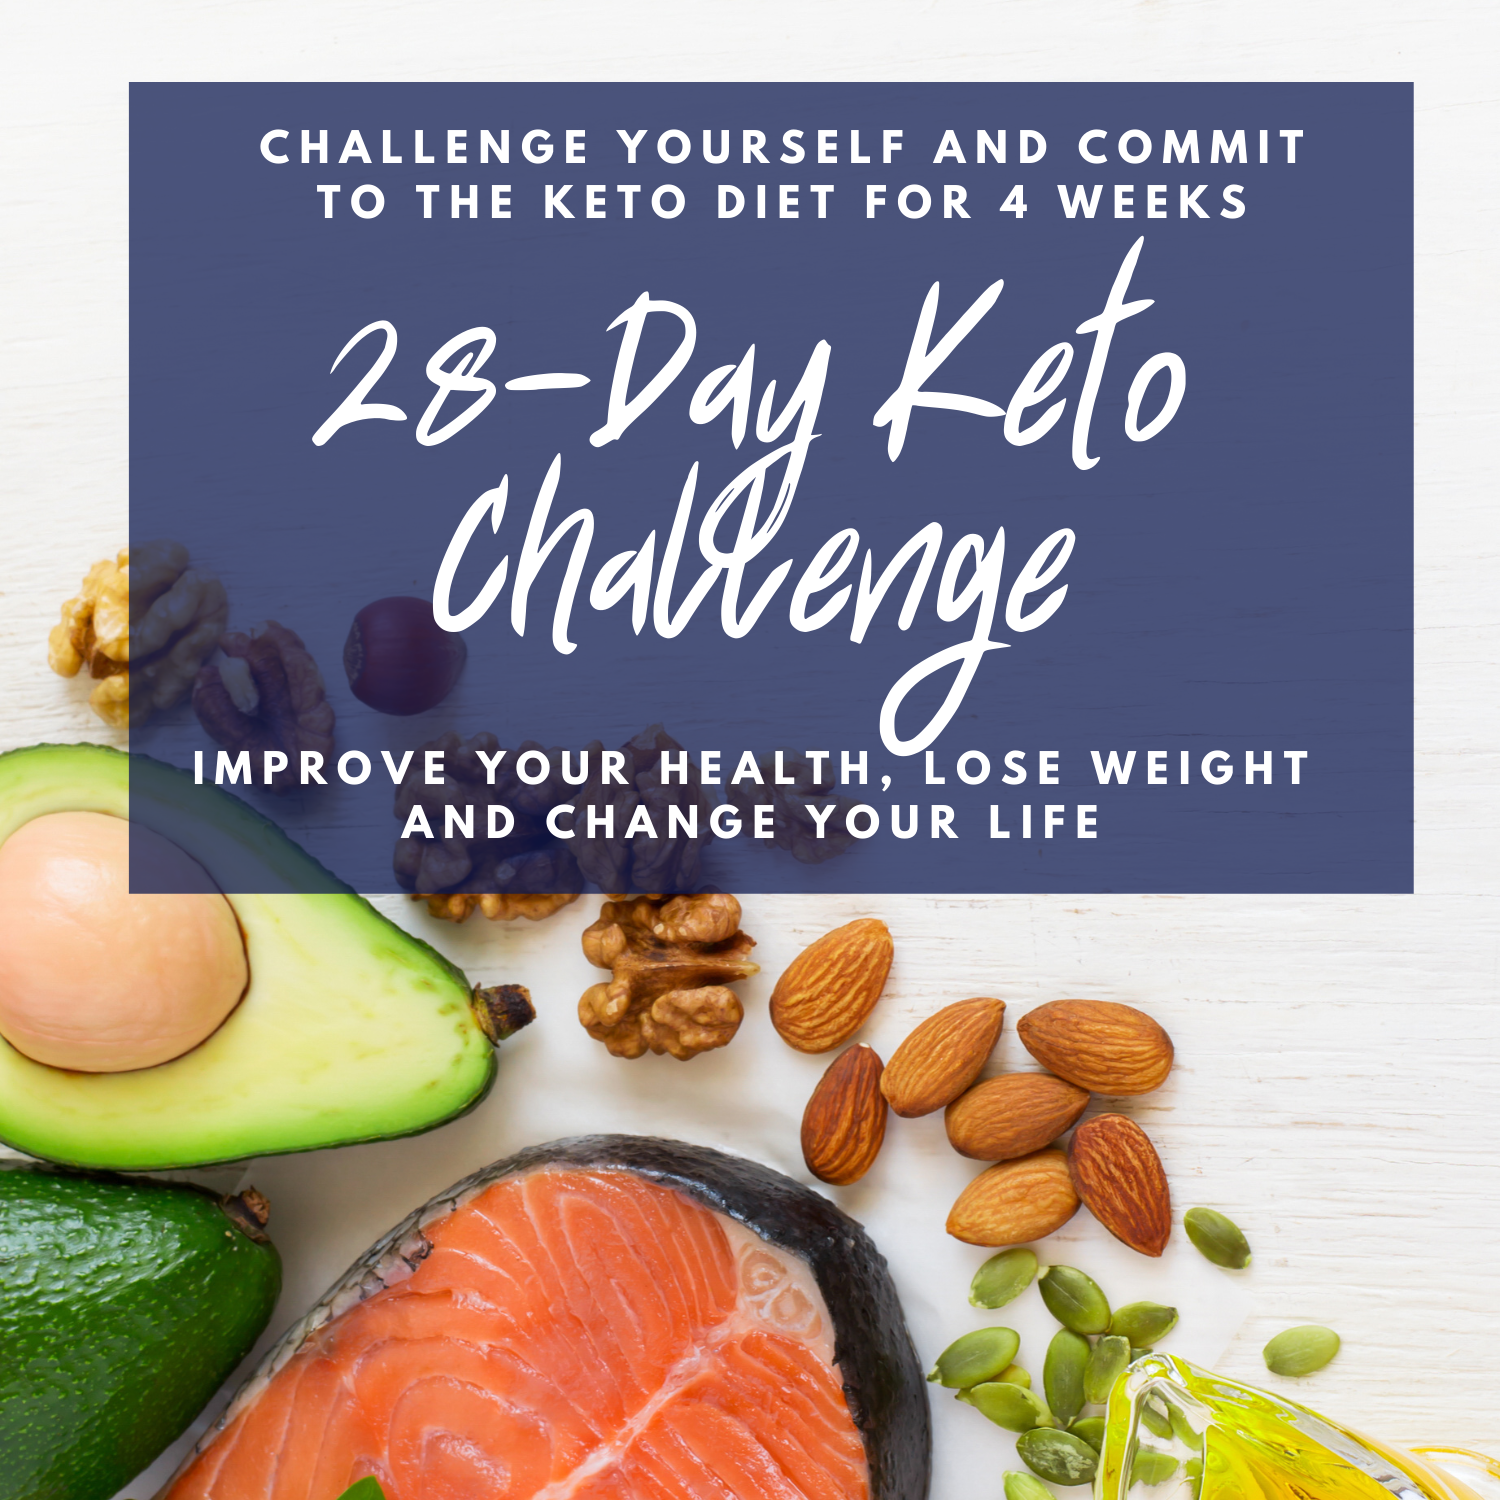 If you want to lose 20 pounds in 3 weeks you have to try the keto or ketogenic diet. This low-carb, high-fat diet forces your body into the state of ketosis where it starts to burn fat for energy, melting pounds off your body faster than any other diet. #ketodiet #ketogenic #lowcarbrecipes